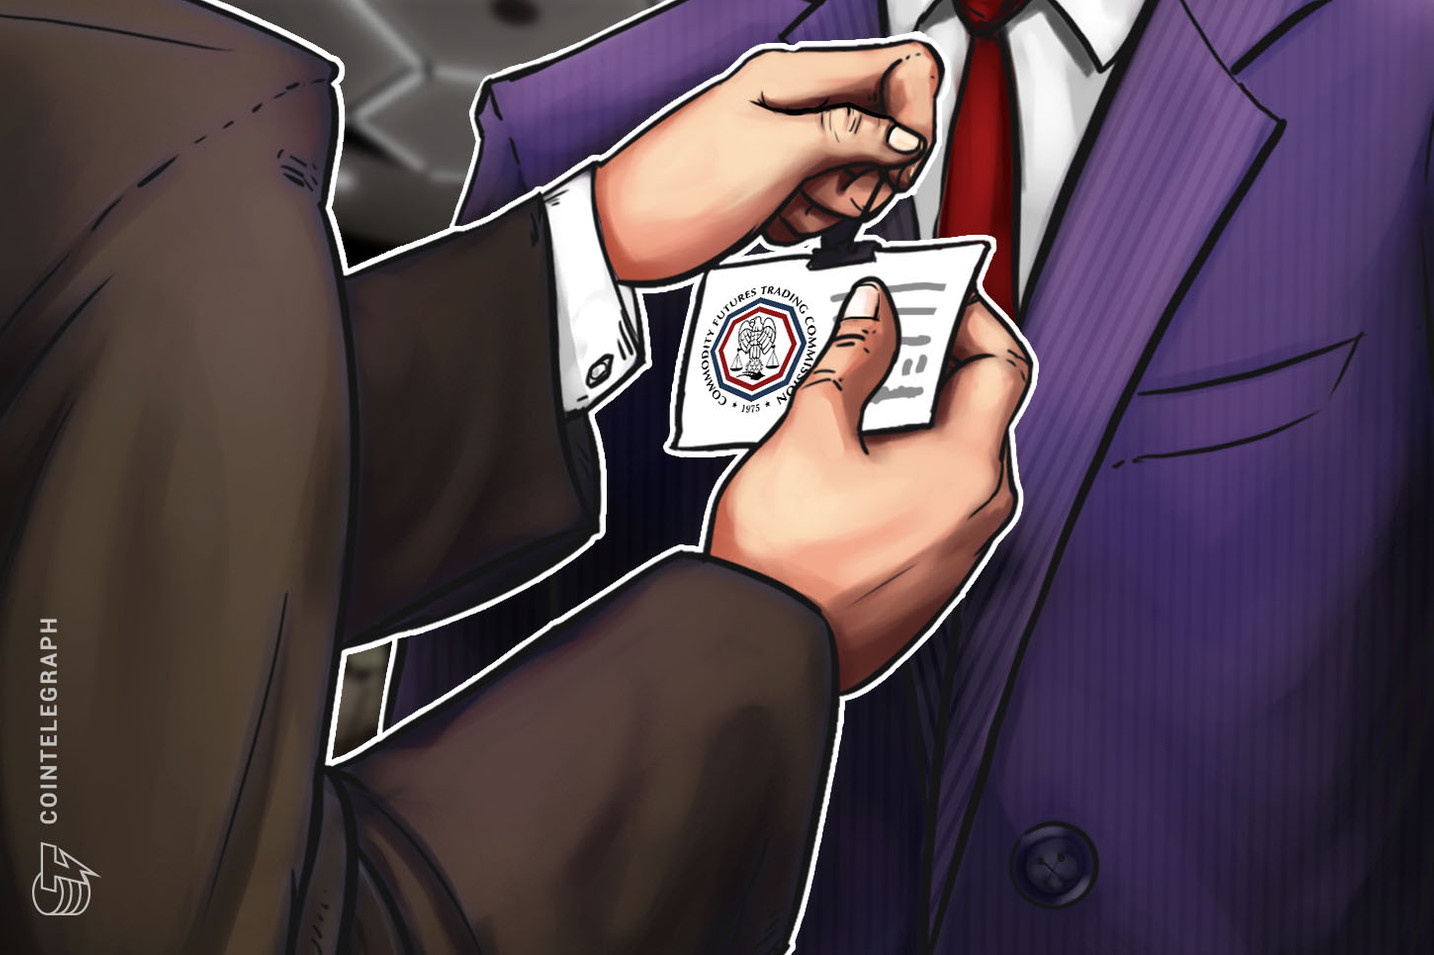 US Commodity Futures Trading Commission Rehires Advisor From Coinbase